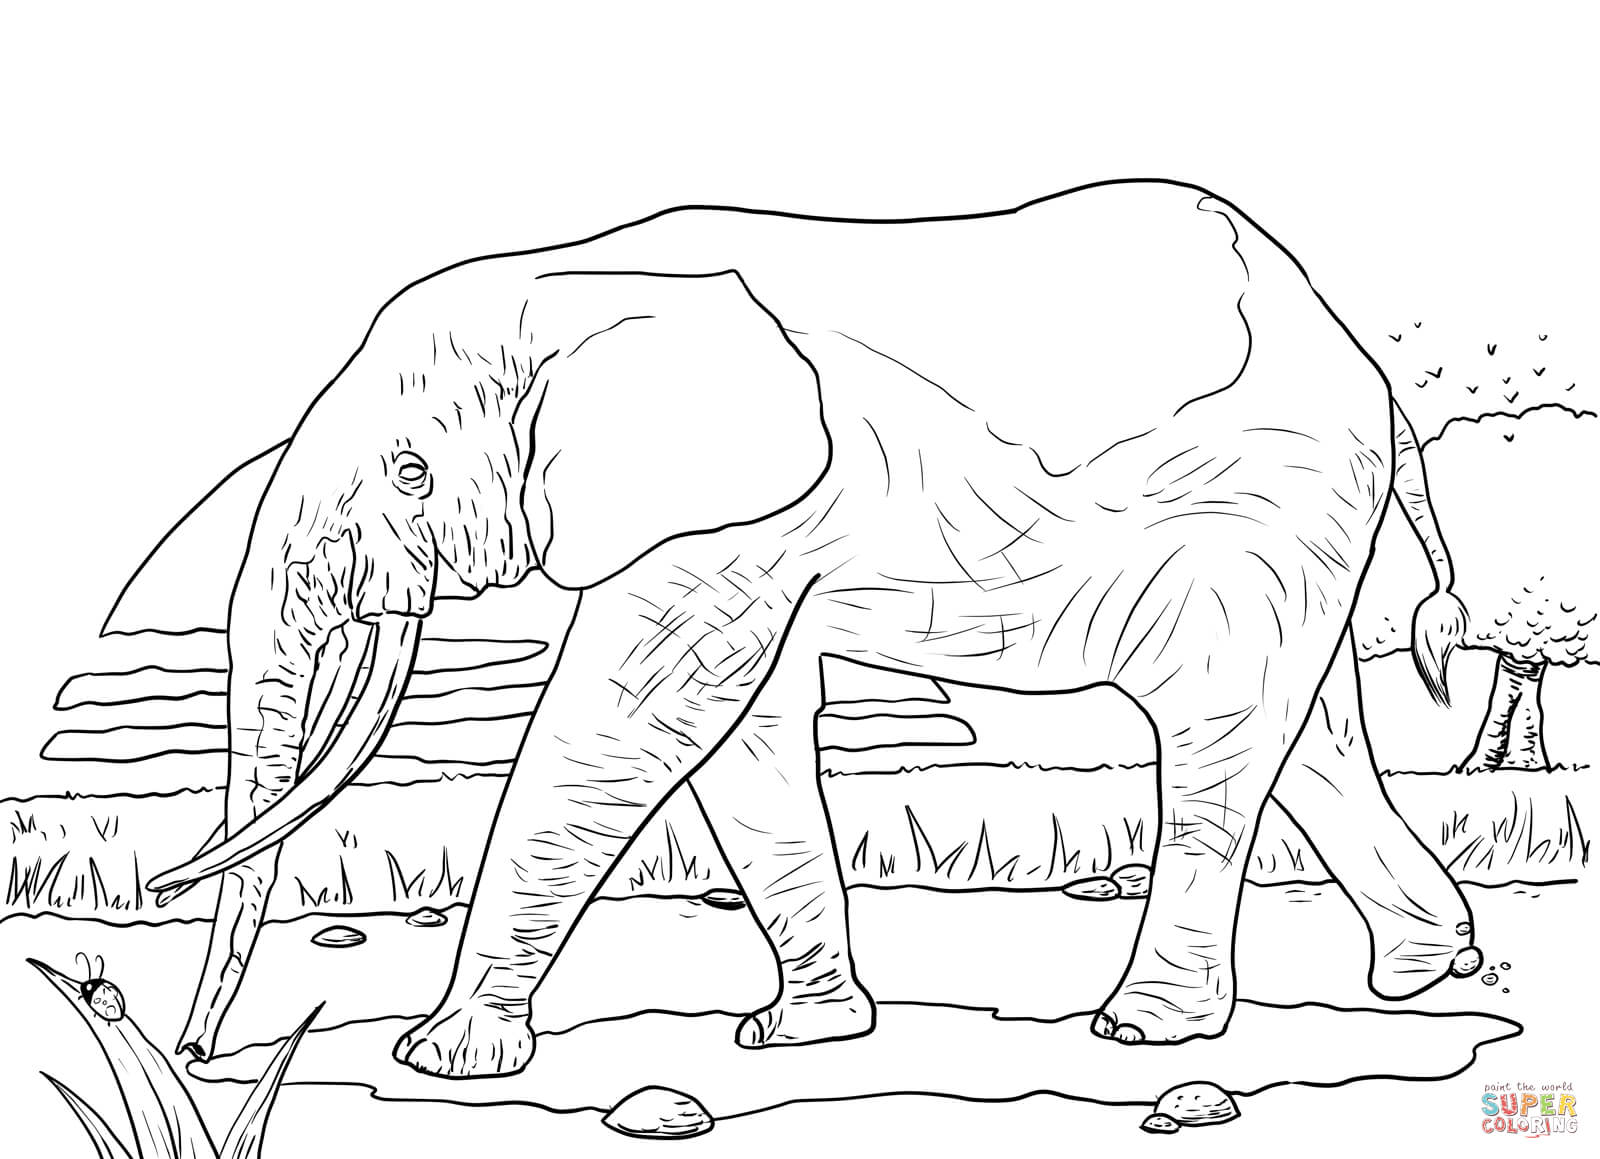 coloring pages of grassland animals coloring pages that say savannah coloring pages of animals pages grassland coloring